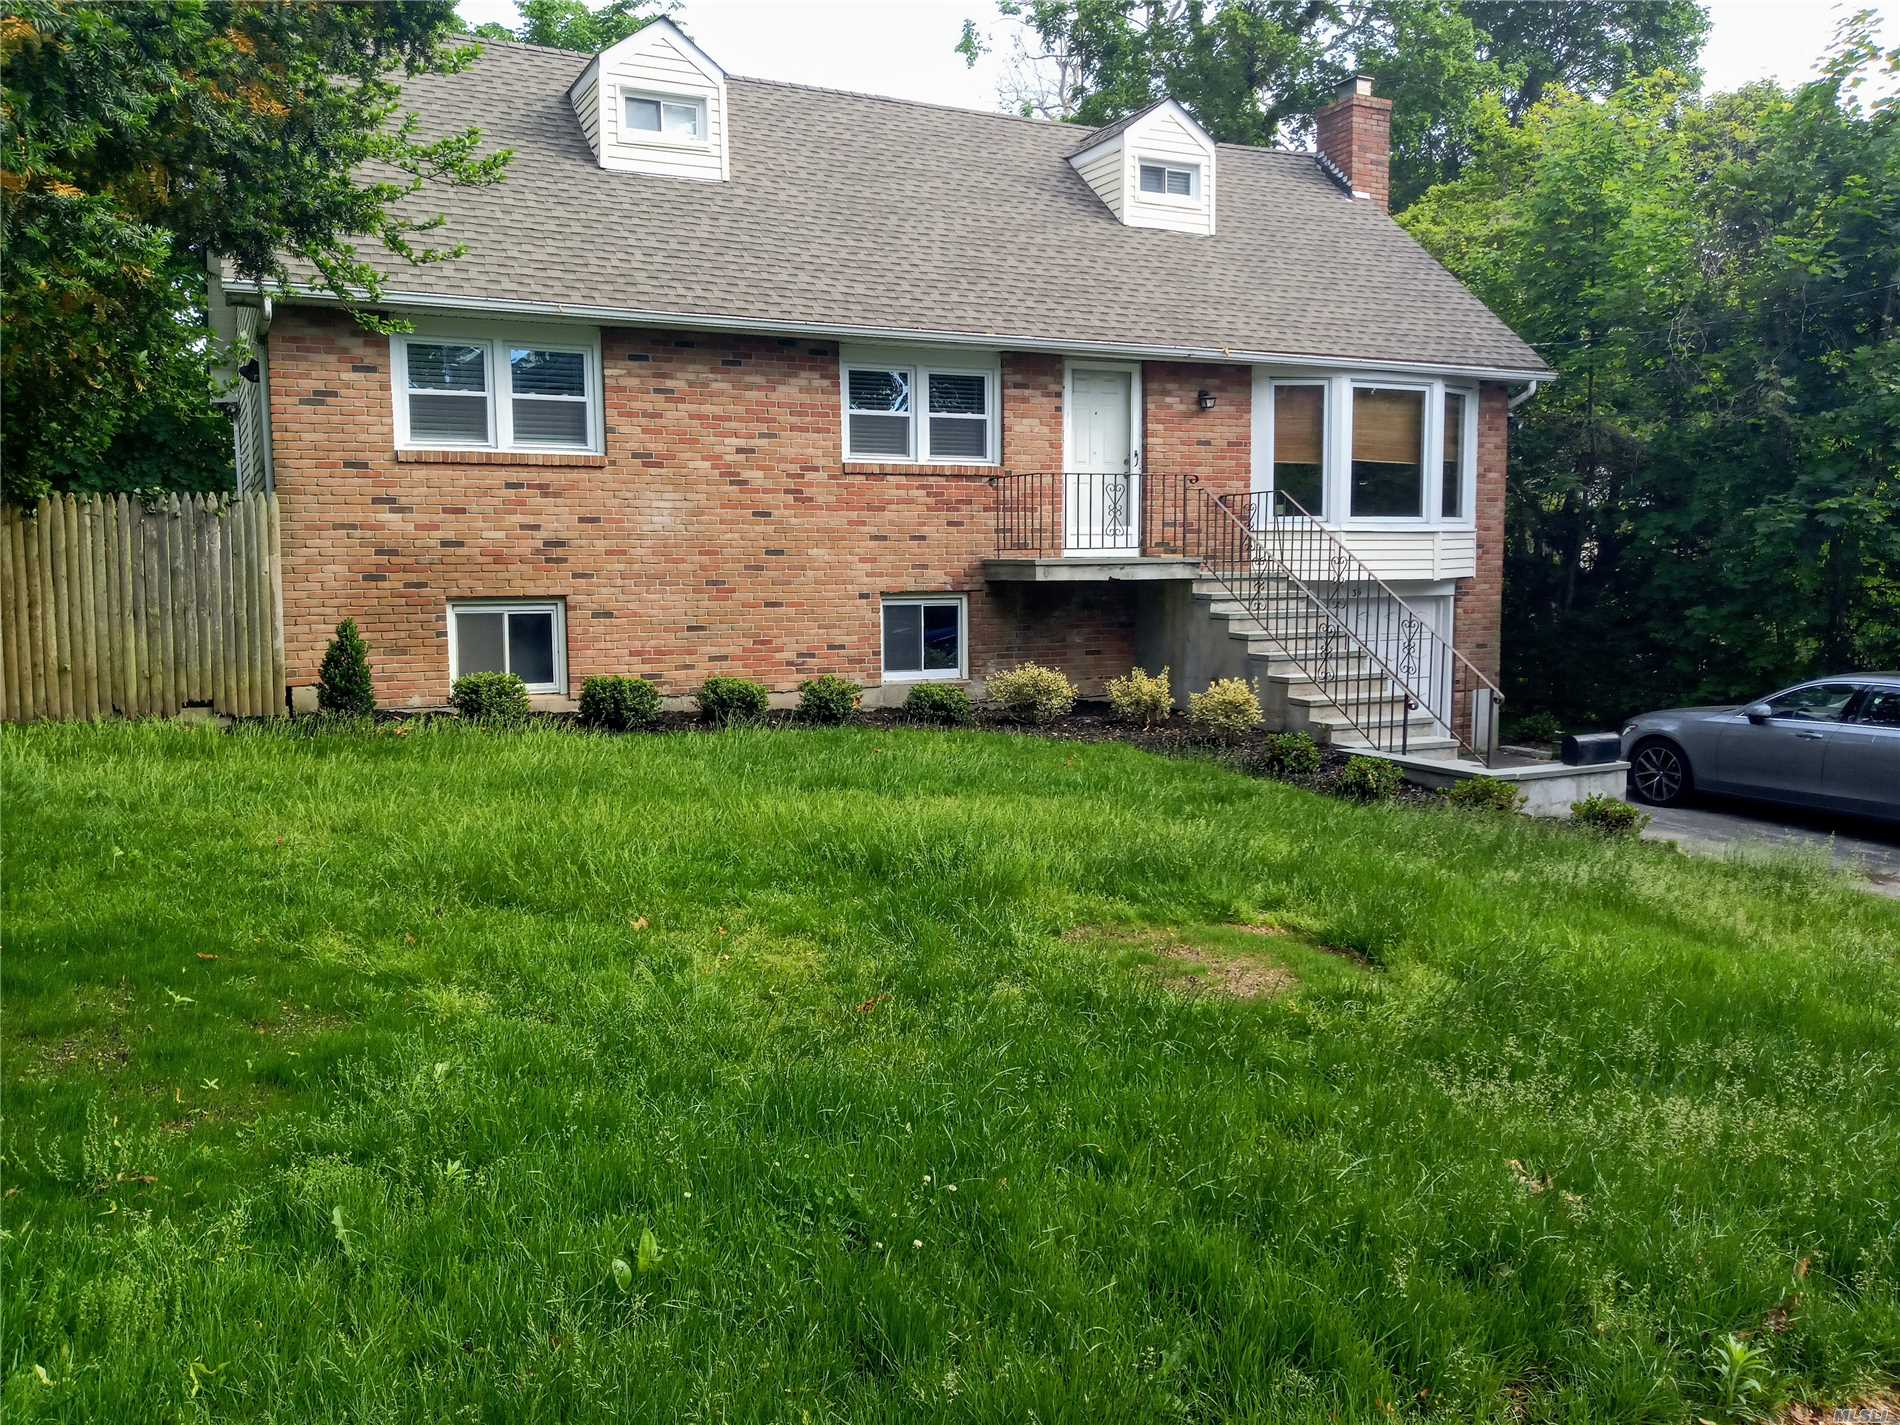 Updated House For Rent , Spacious And Bright, 5 Bedrooms, 2 Baths, Lrm/Fp, Drm, Great Kitchen., Updated Deck. 1 Car Garage